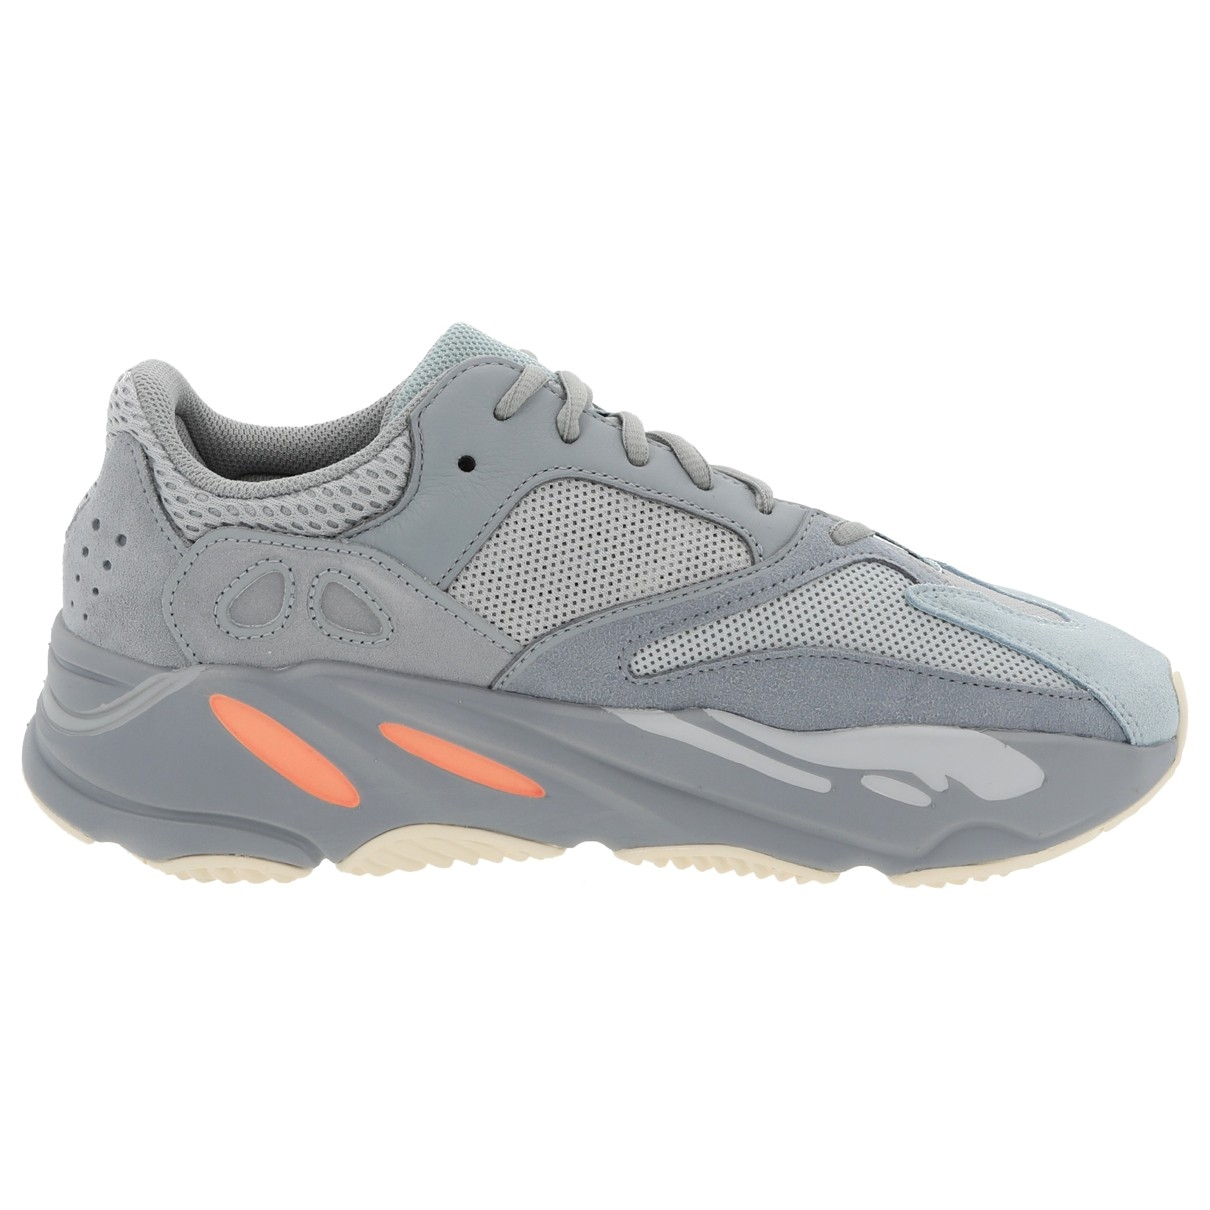 Yeezy X Adidas Boost 700 V2 Grey Suede Trainers for Men 10 US